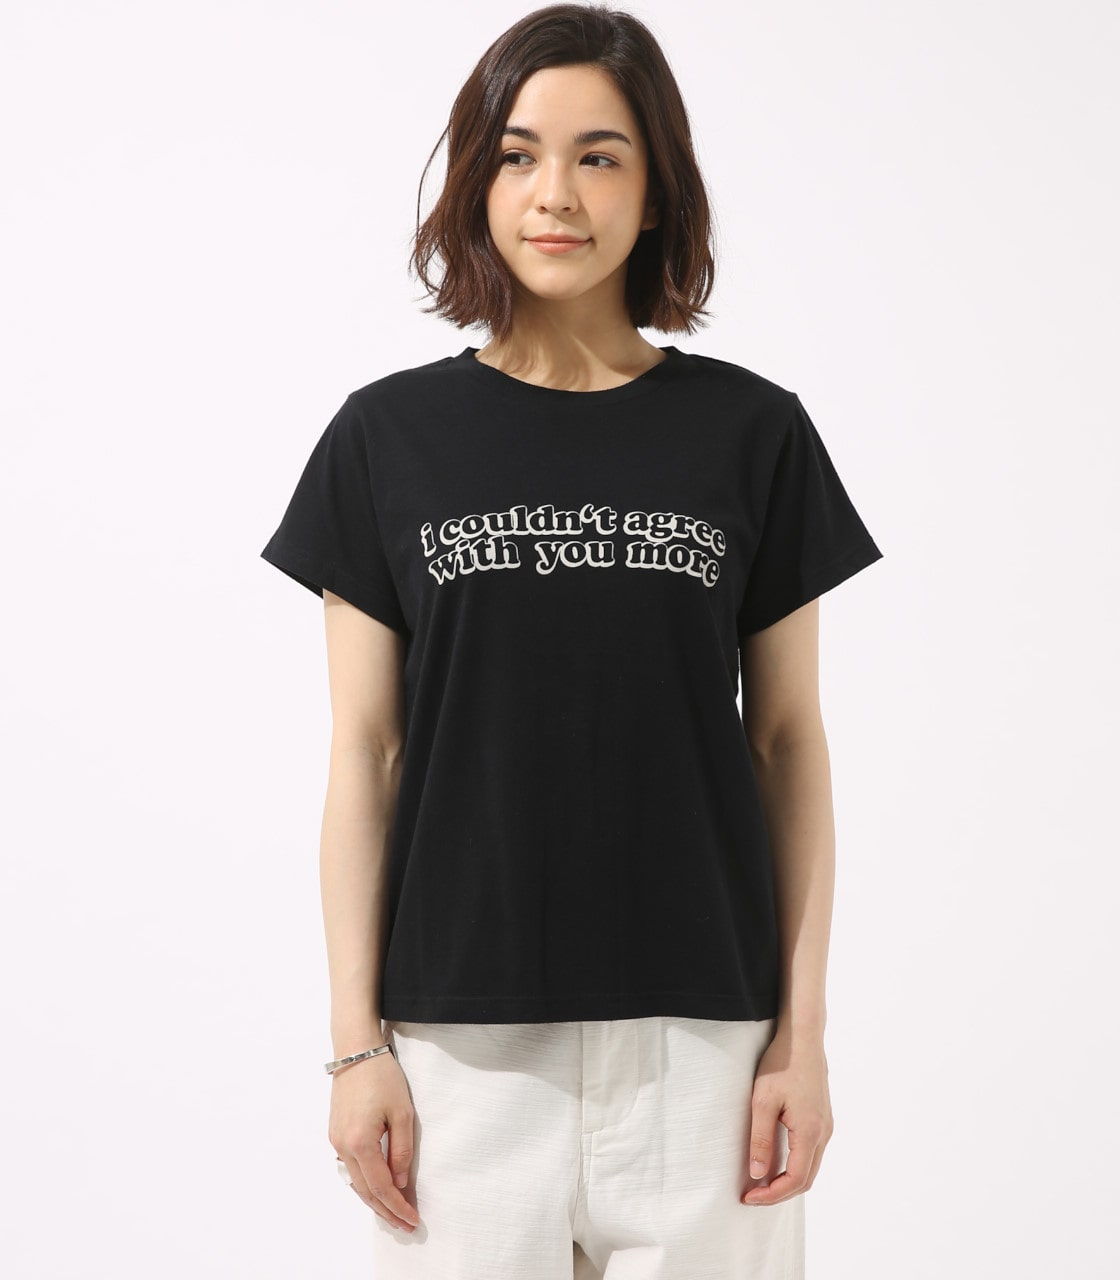 【AZUL BY MOUSSY】With you more TEE 詳細画像 BLK 5